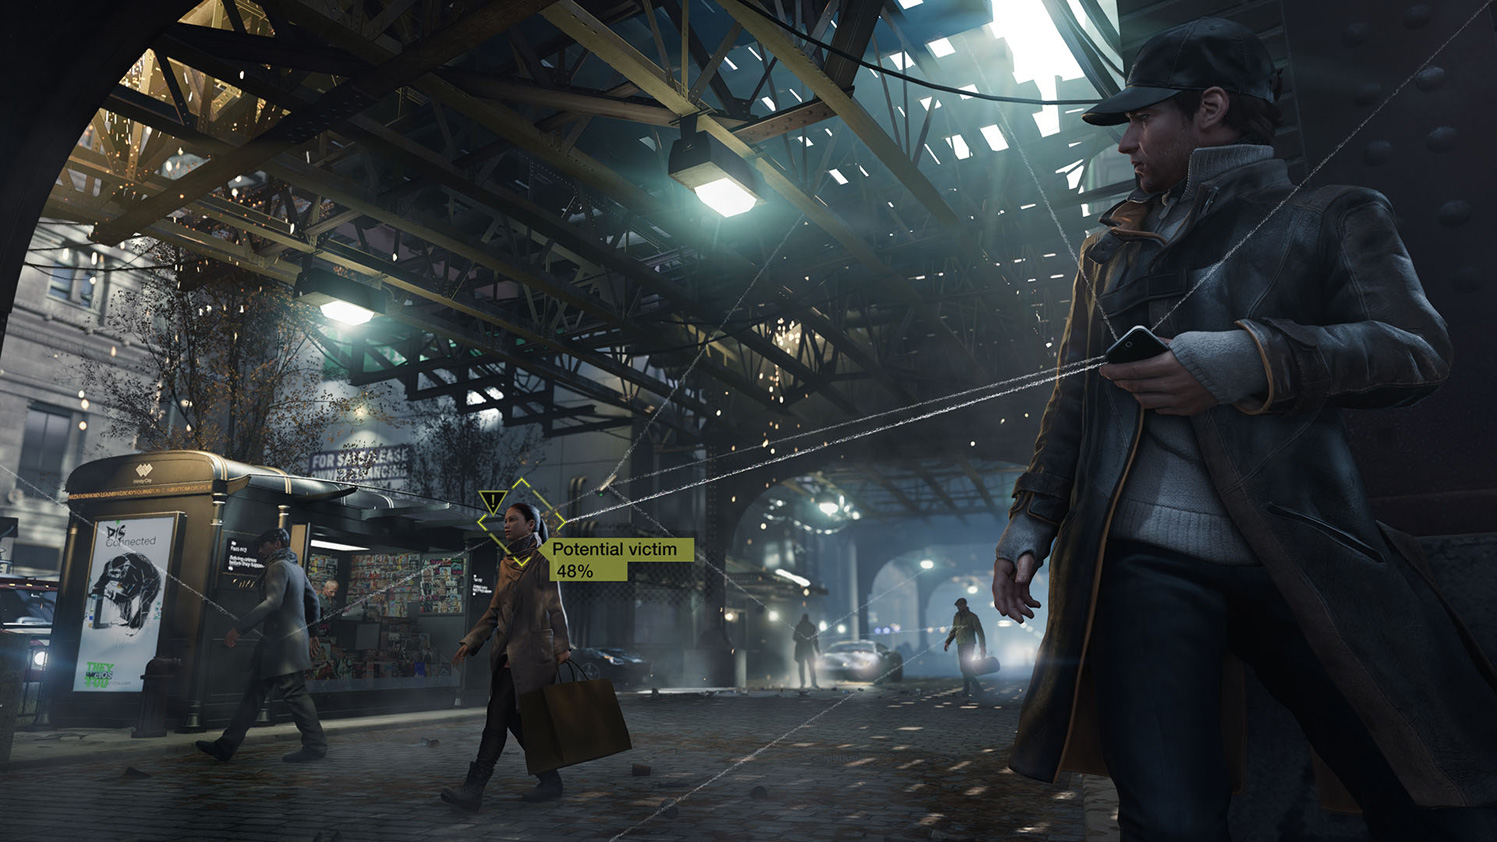 Watch dogs pc requirements - photo#20